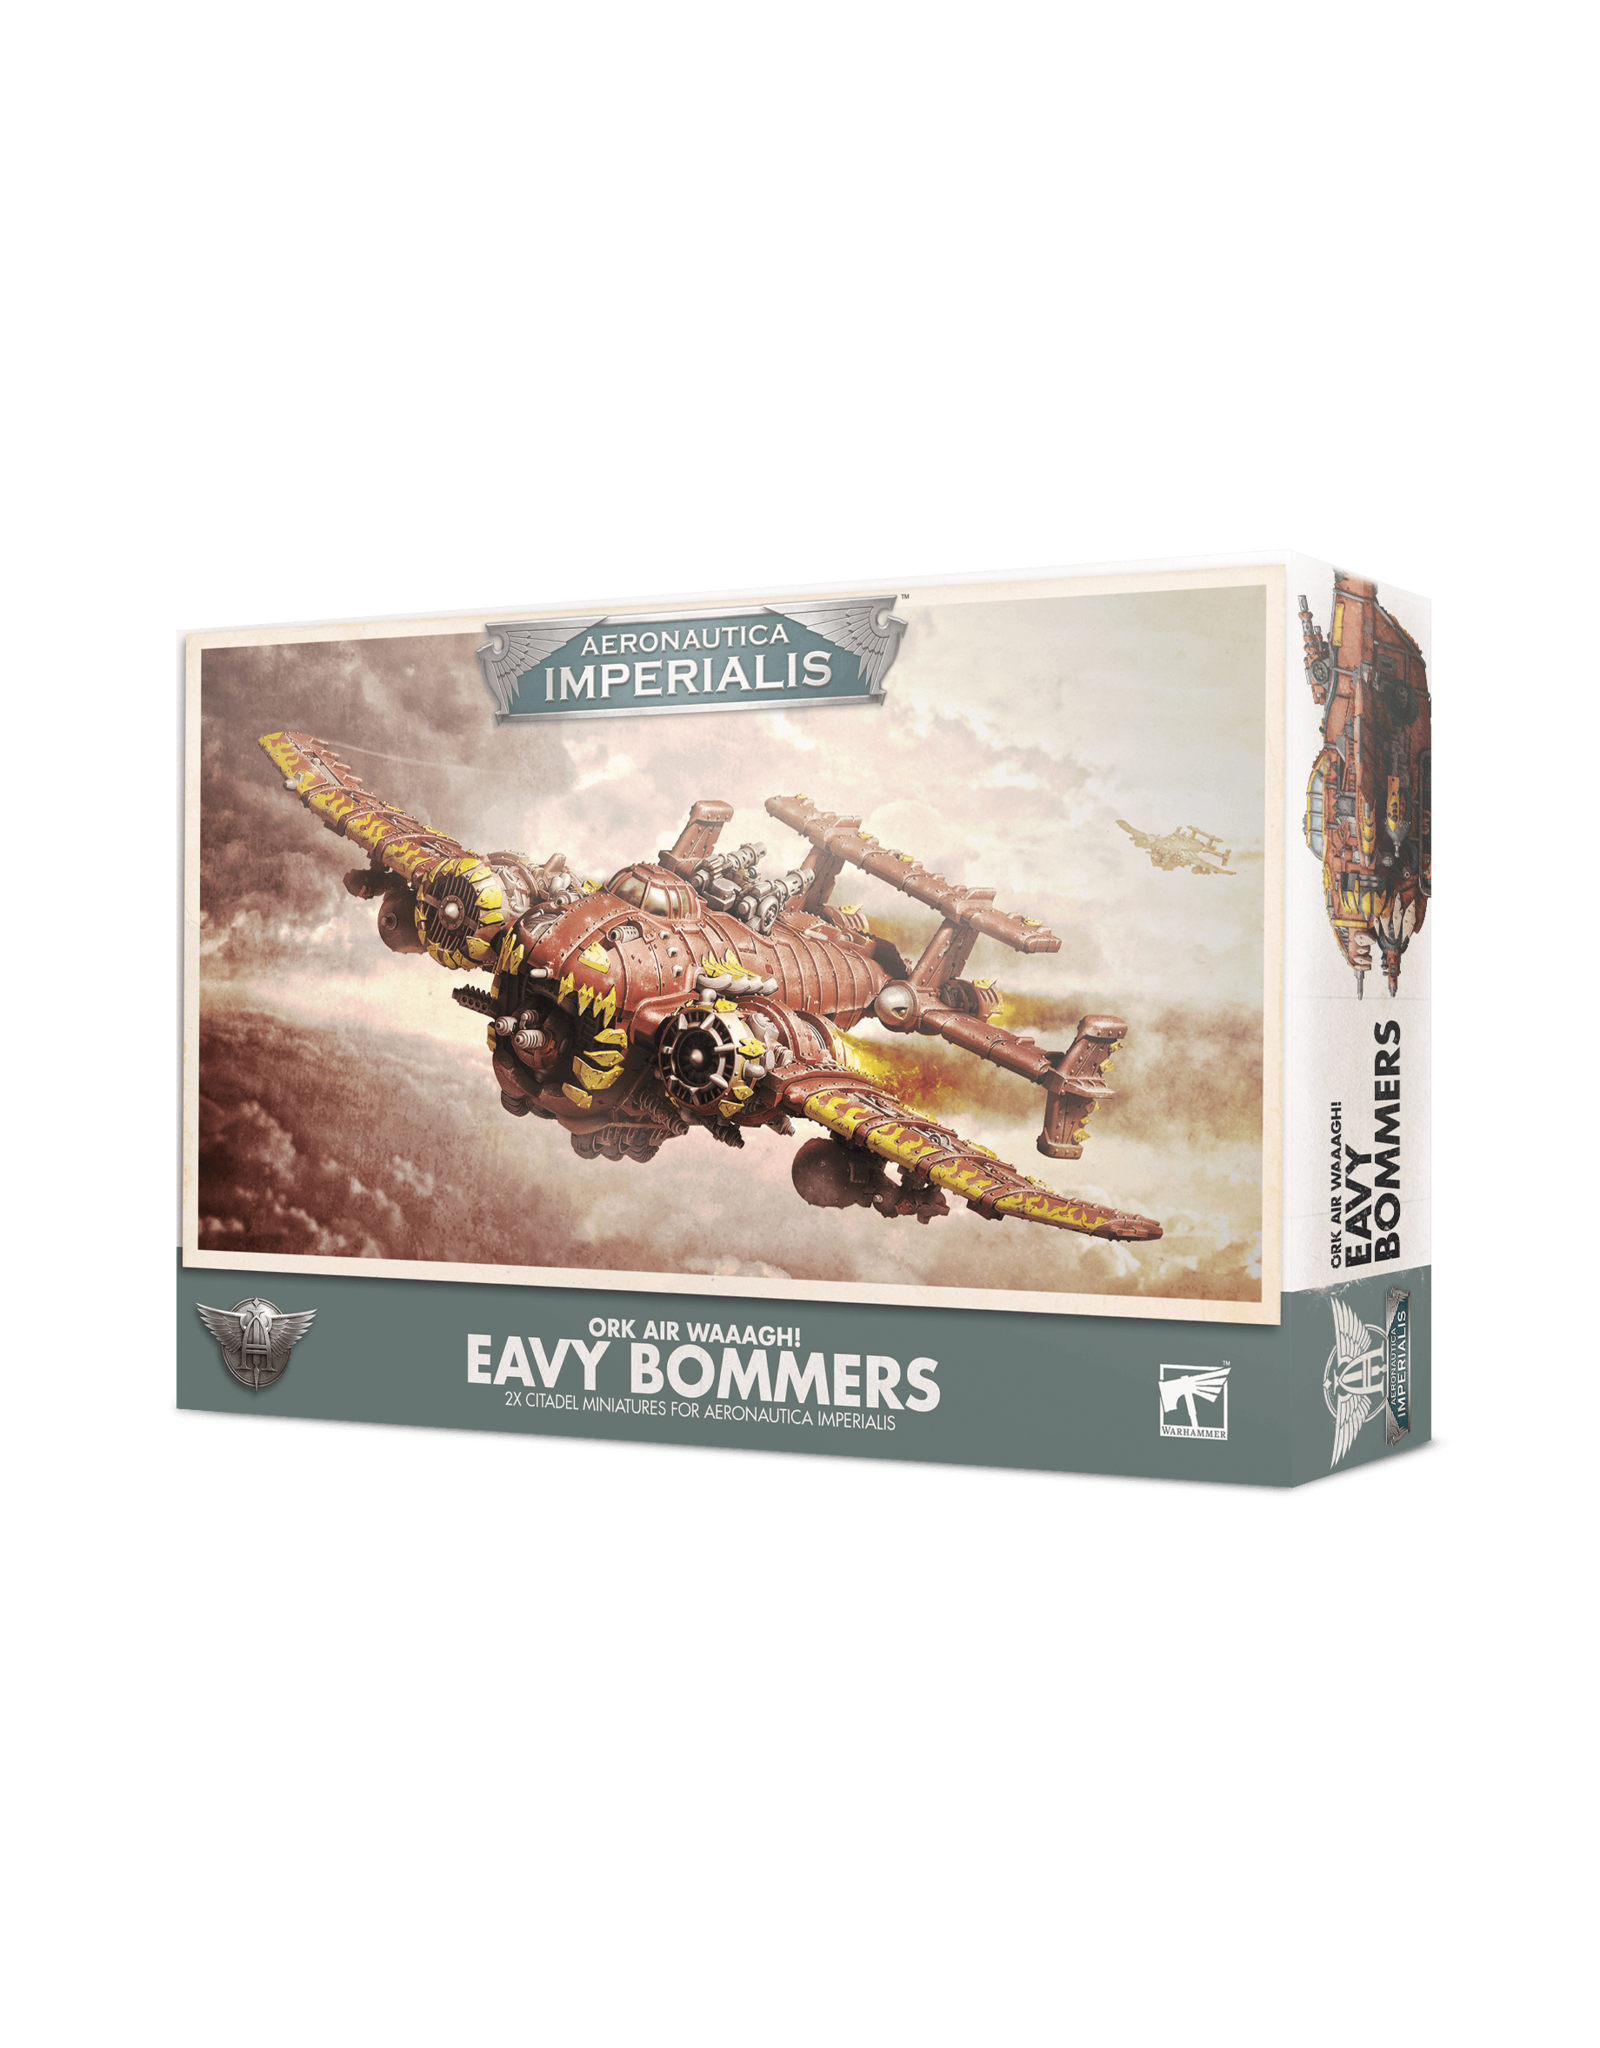 Games Workshop A/I ORK AIR WAAAGH! 'EAVY BOMMERZ